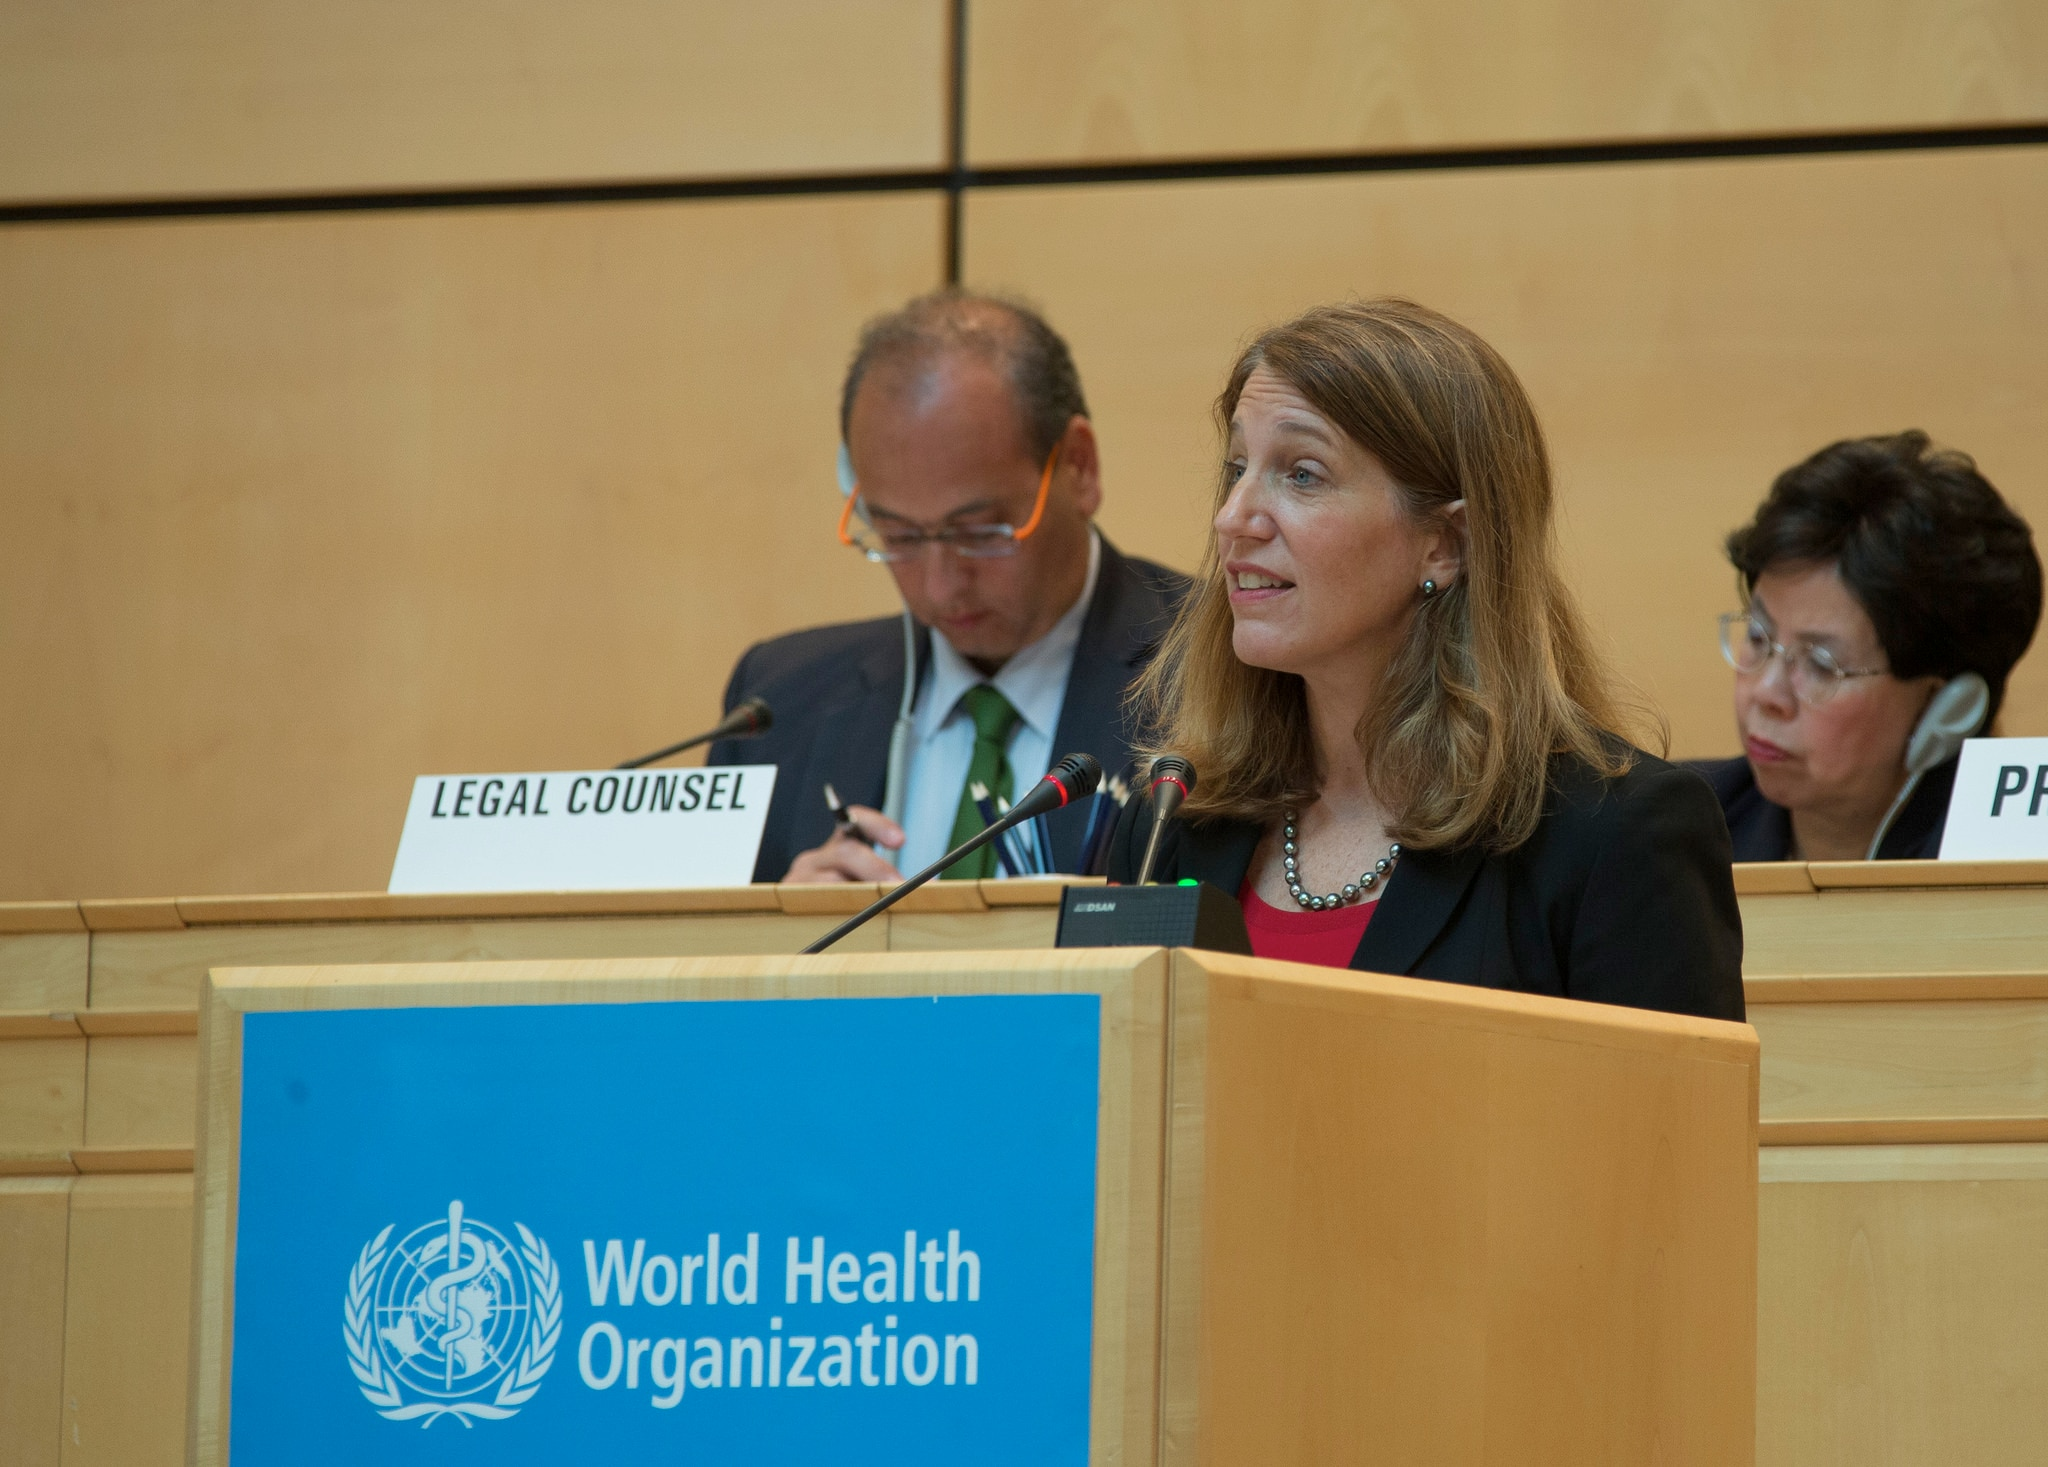 Secretary Burwell gives remarks at the World Health Assembly Plenary Session.